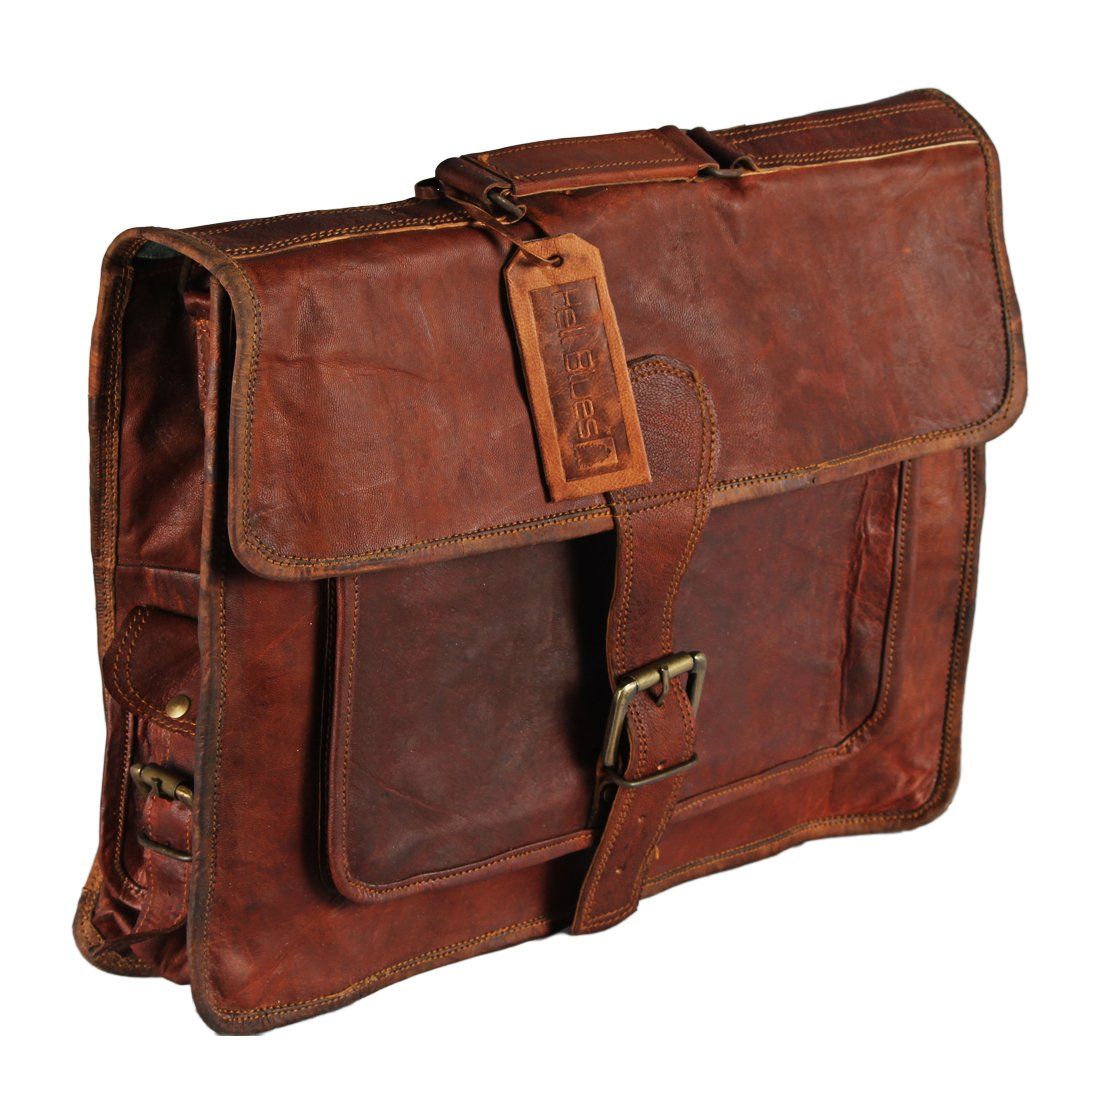 Leather satchel upto 15.6 inch laptop bag by Hell Blues